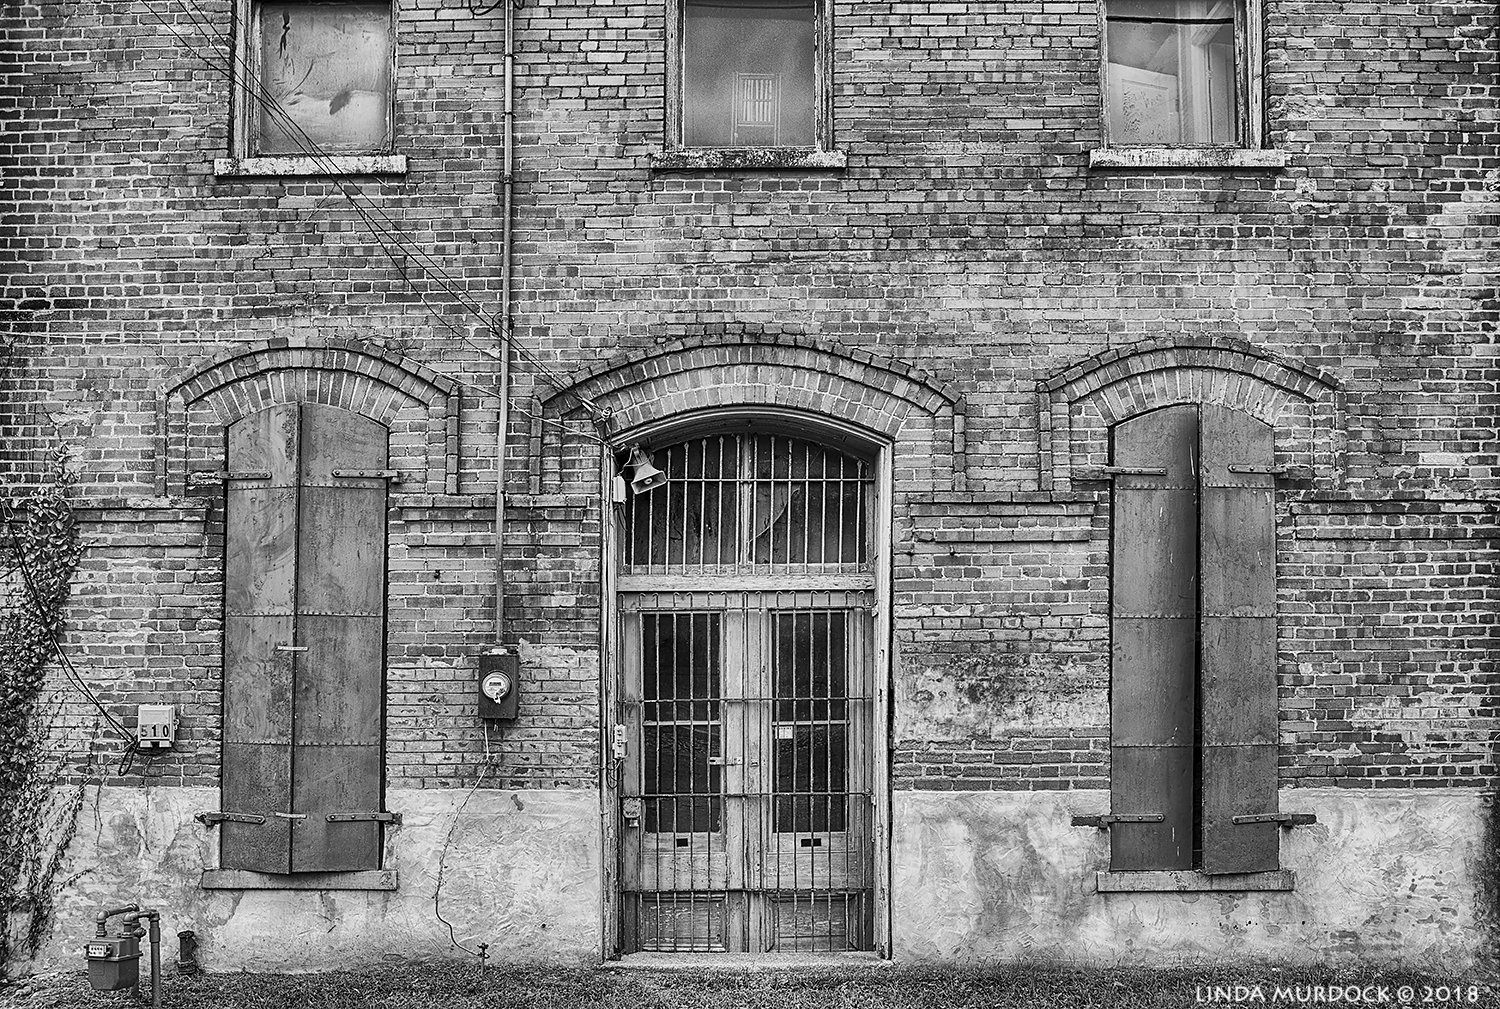 Wooden shutters are probably original but the iron bars might have come later?   Nikon D810 with Tamron 15-30 f/2.8 ~ ISO 100 f/8.0 at 30mm HDR; hand-held